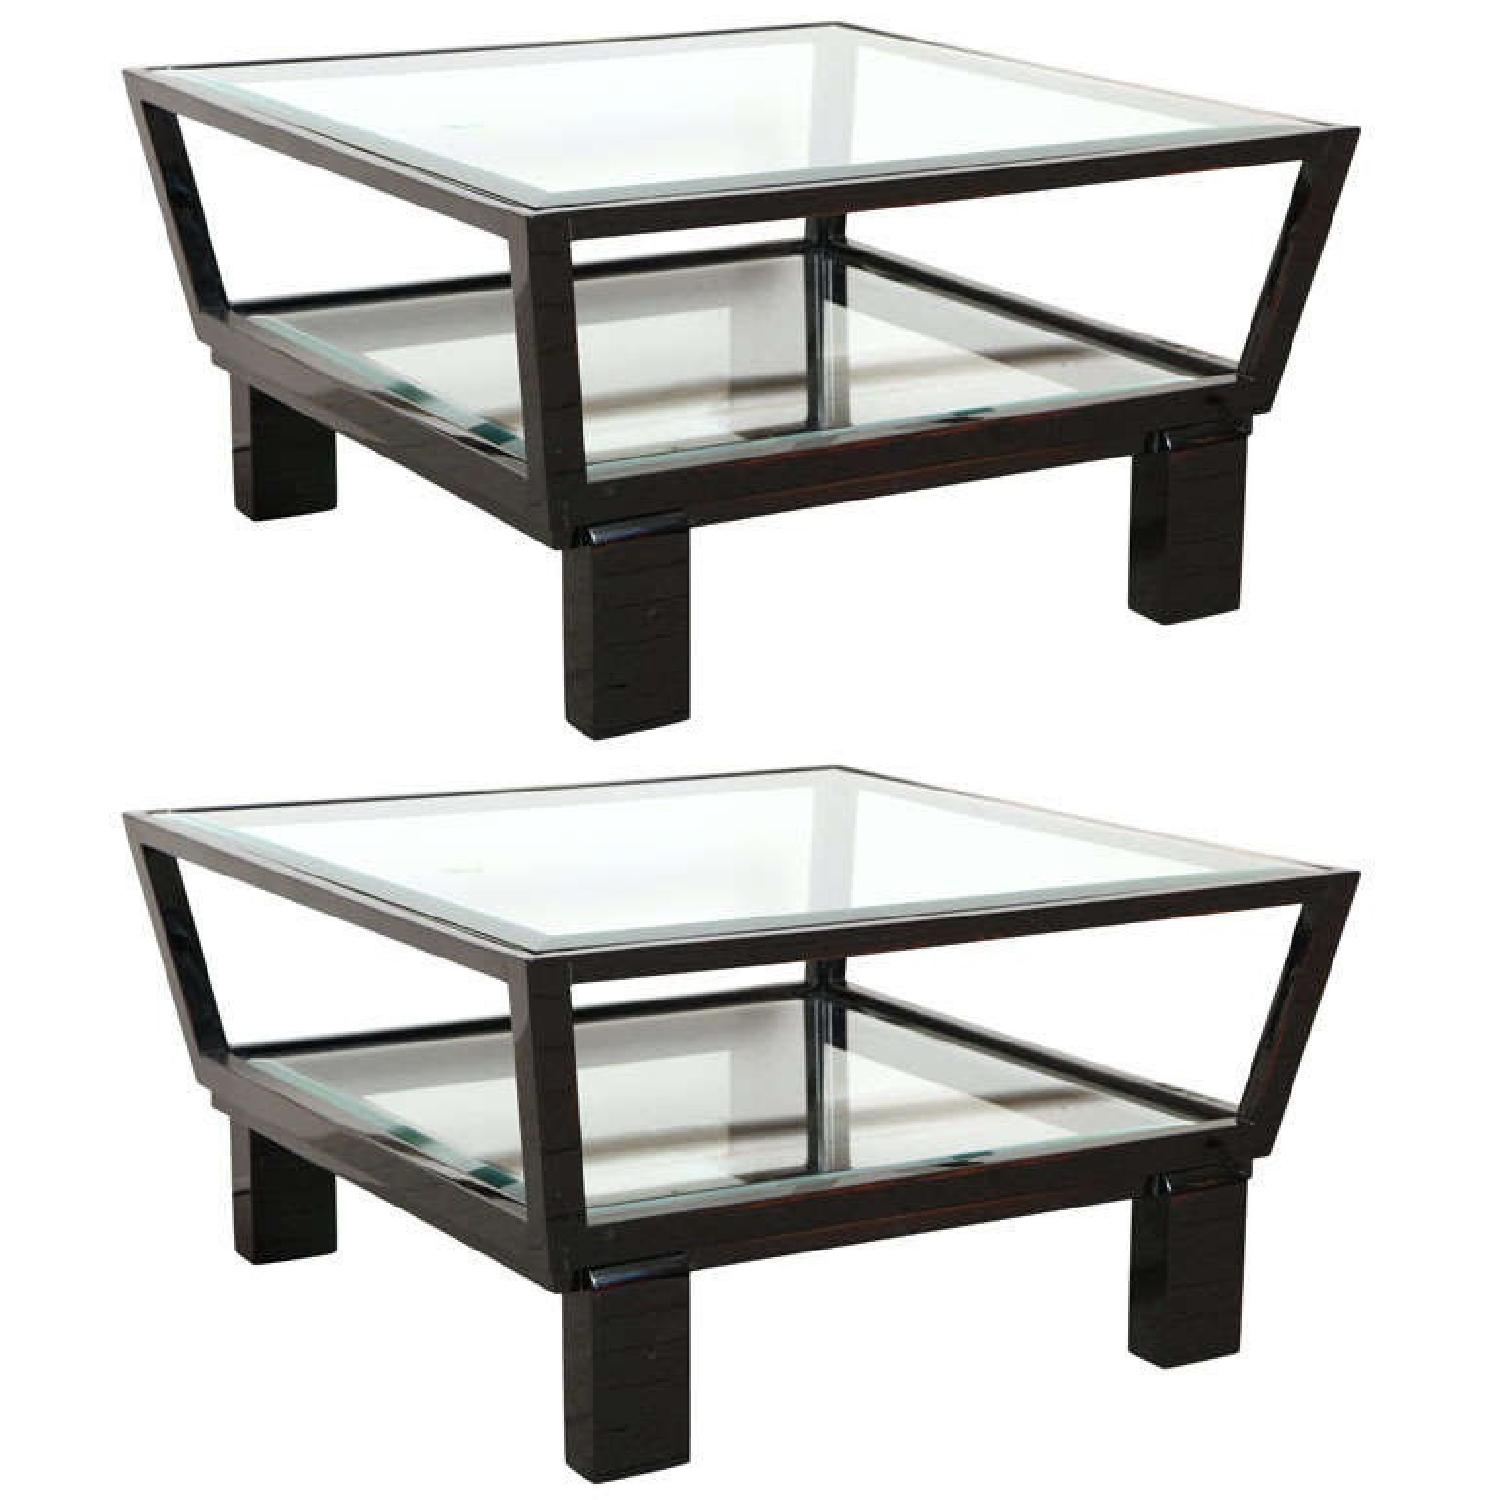 Black & Glass Top Side Tables - image-0